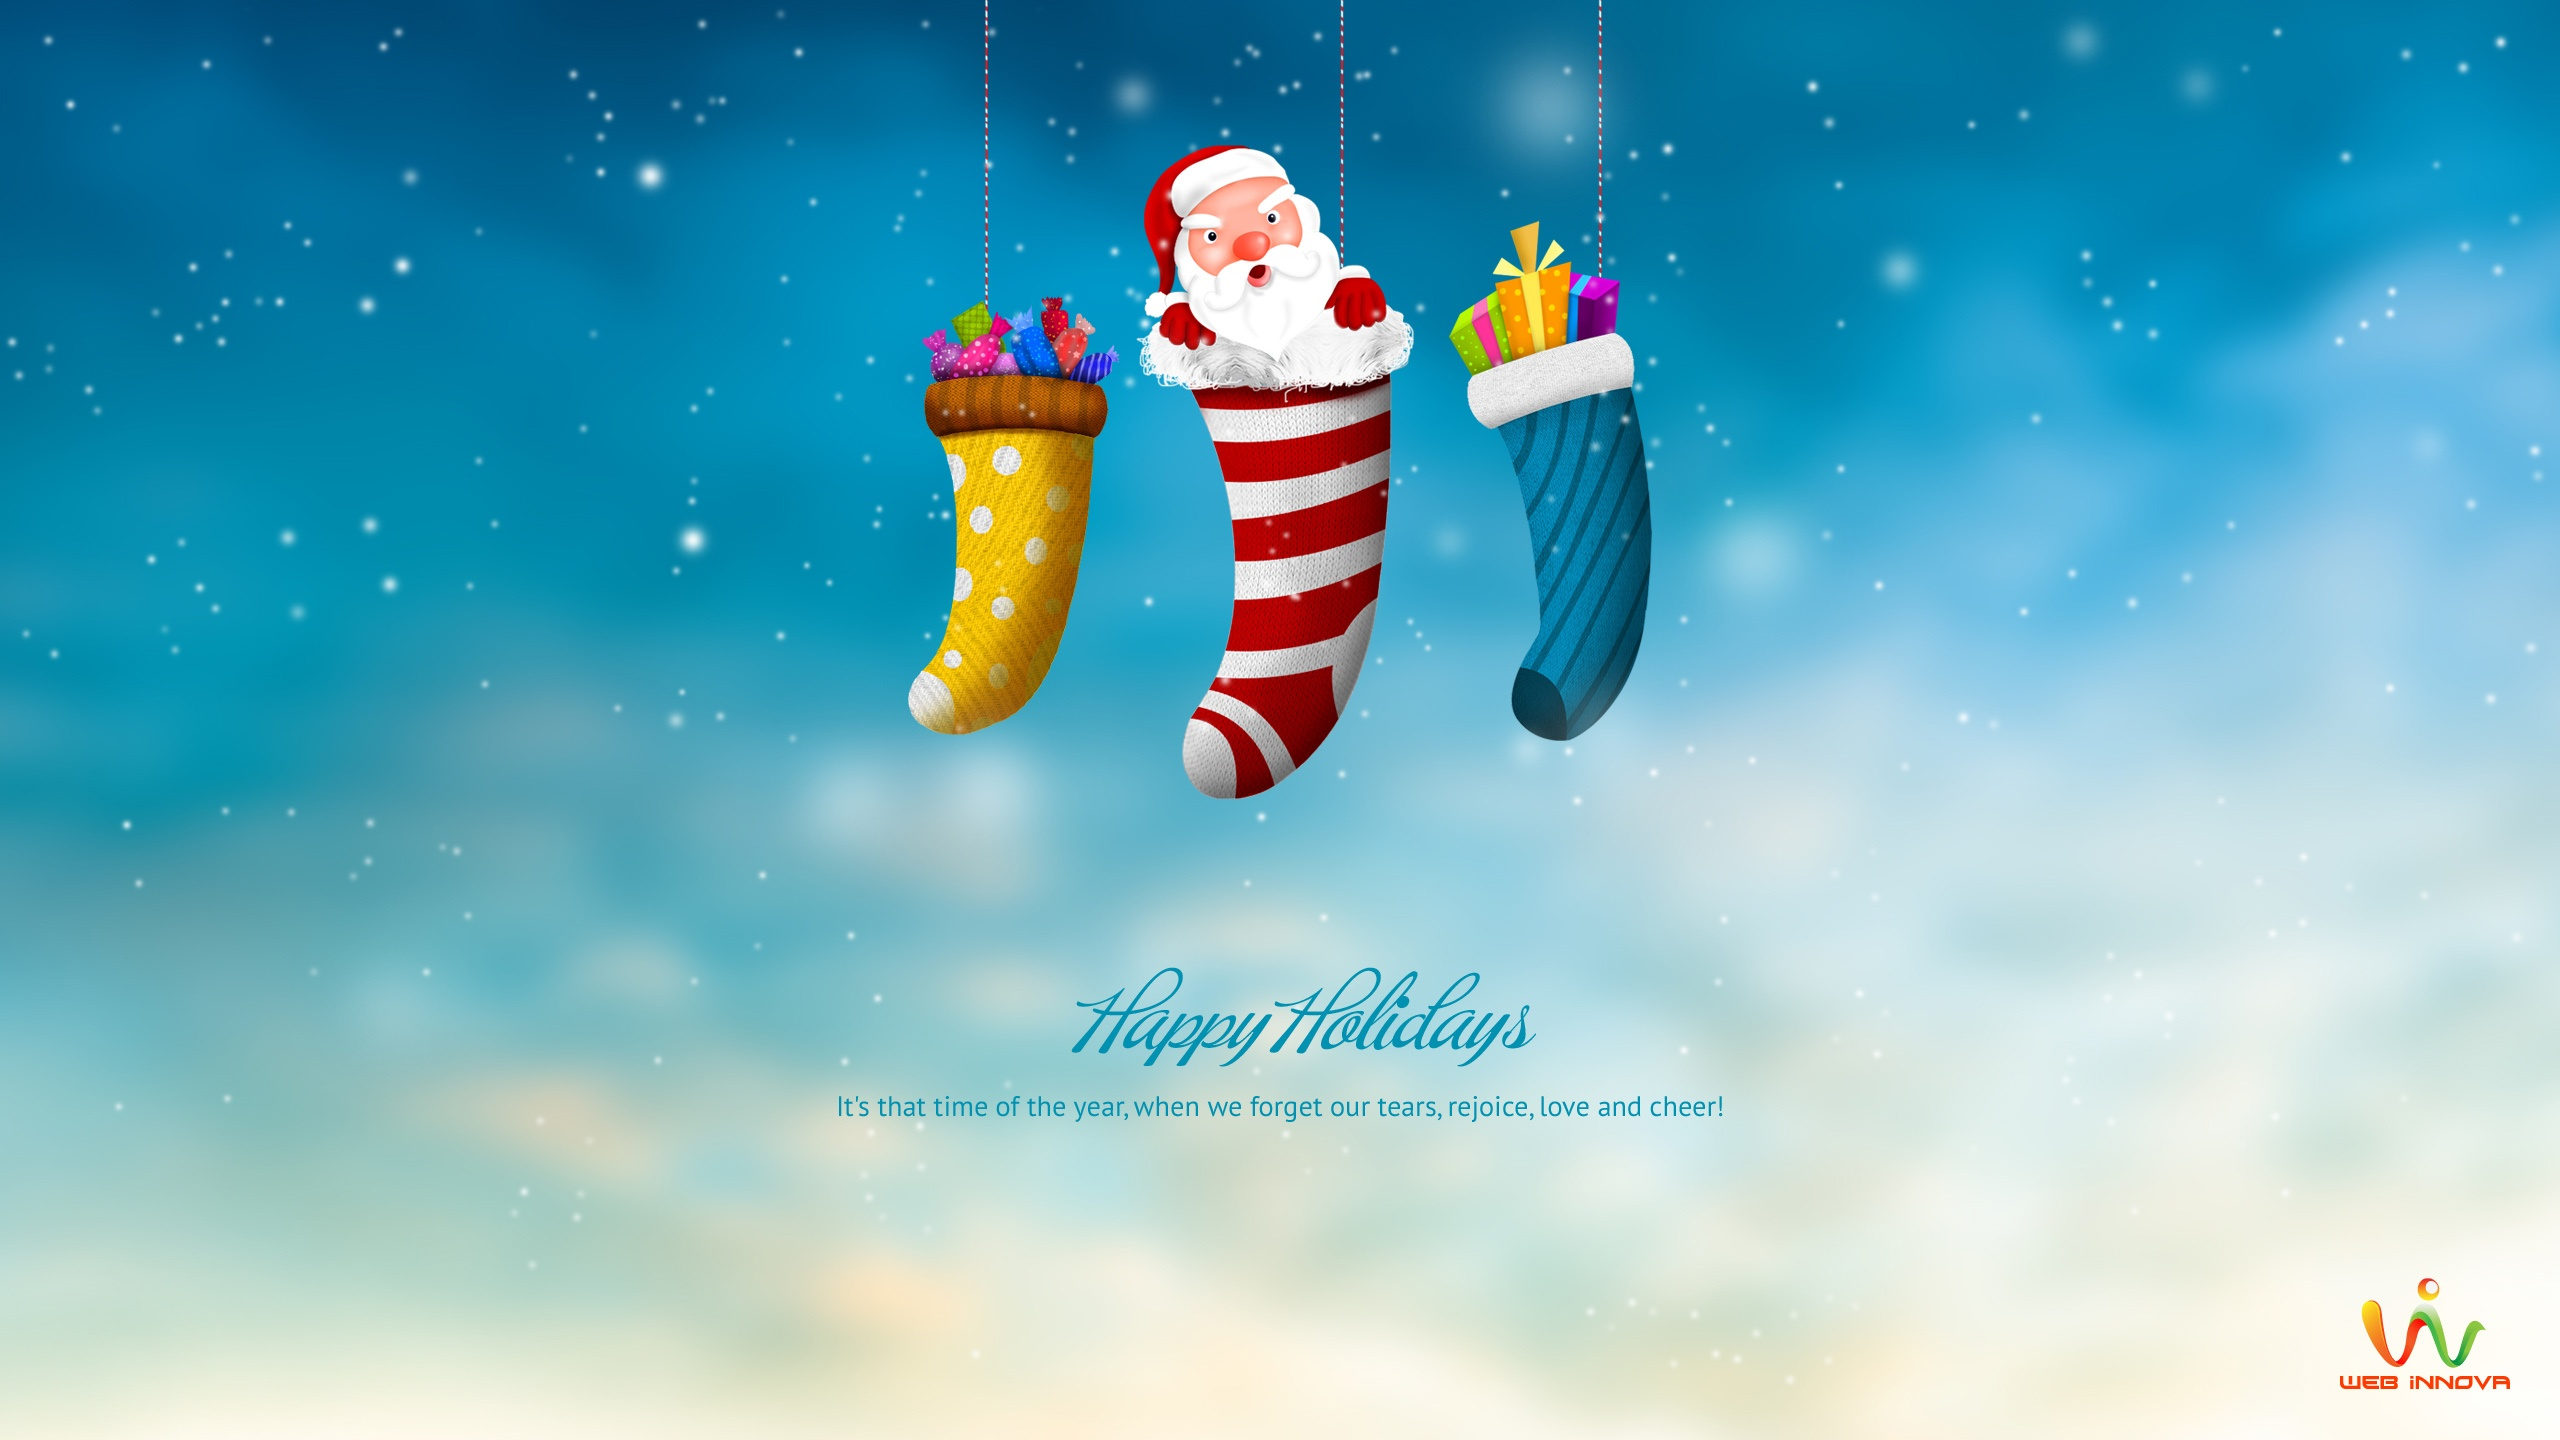 Happy Holidays Wallpaper